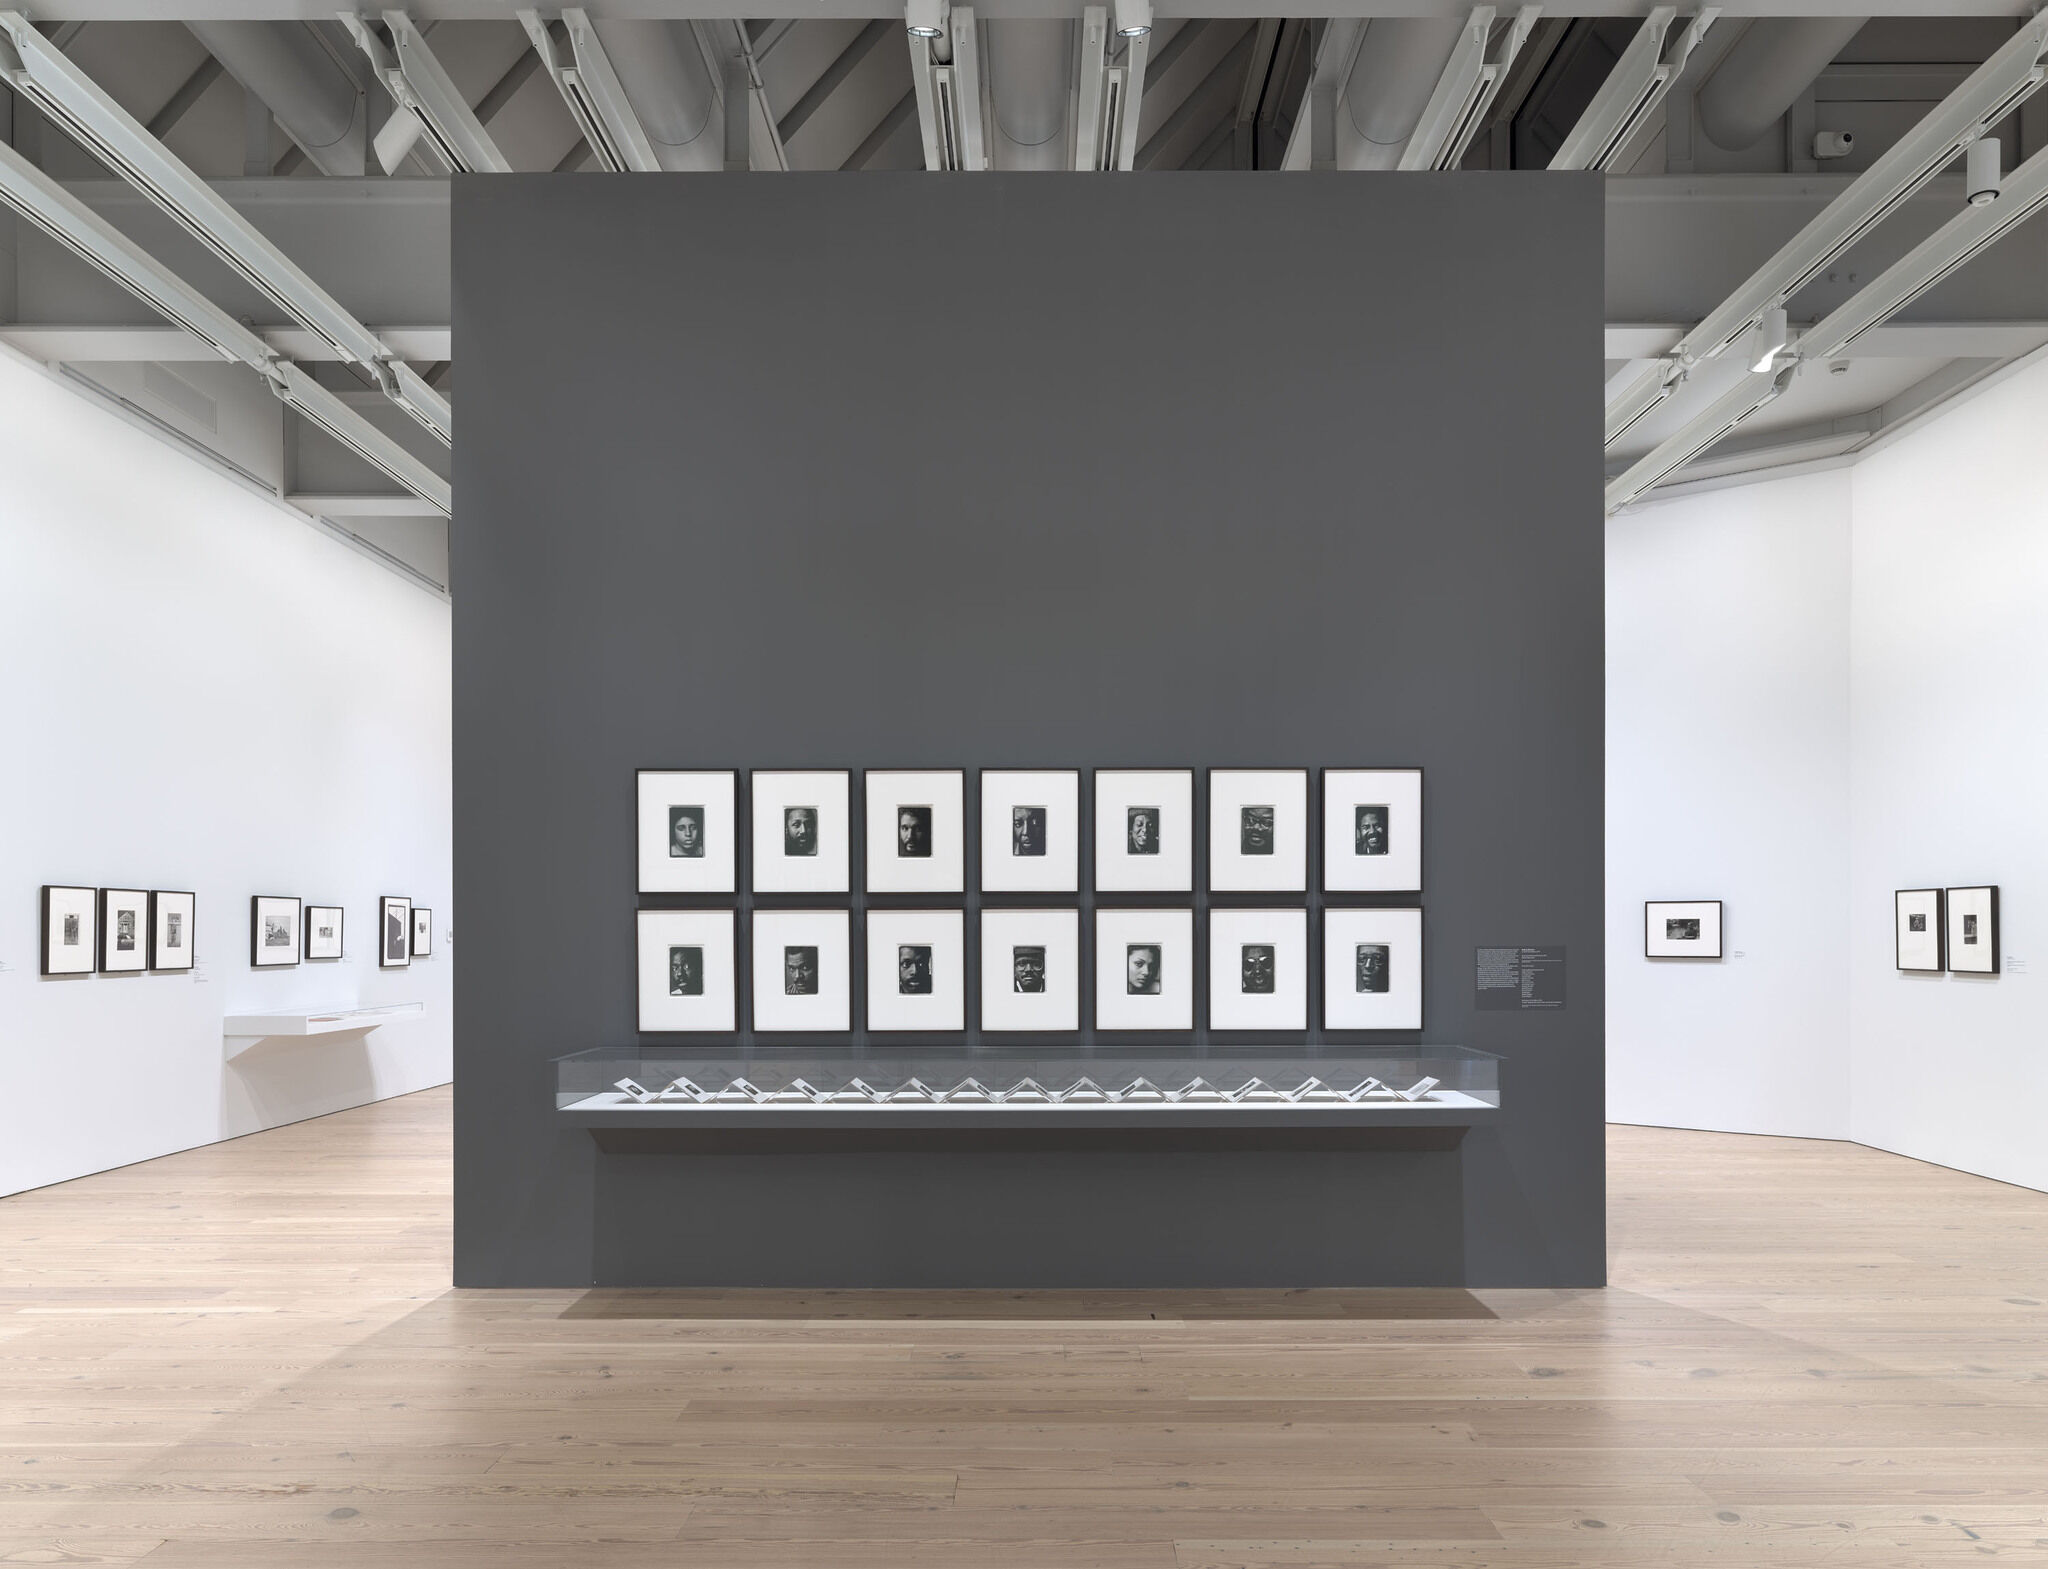 Black and white portraits displayed on a wall in a gallery.